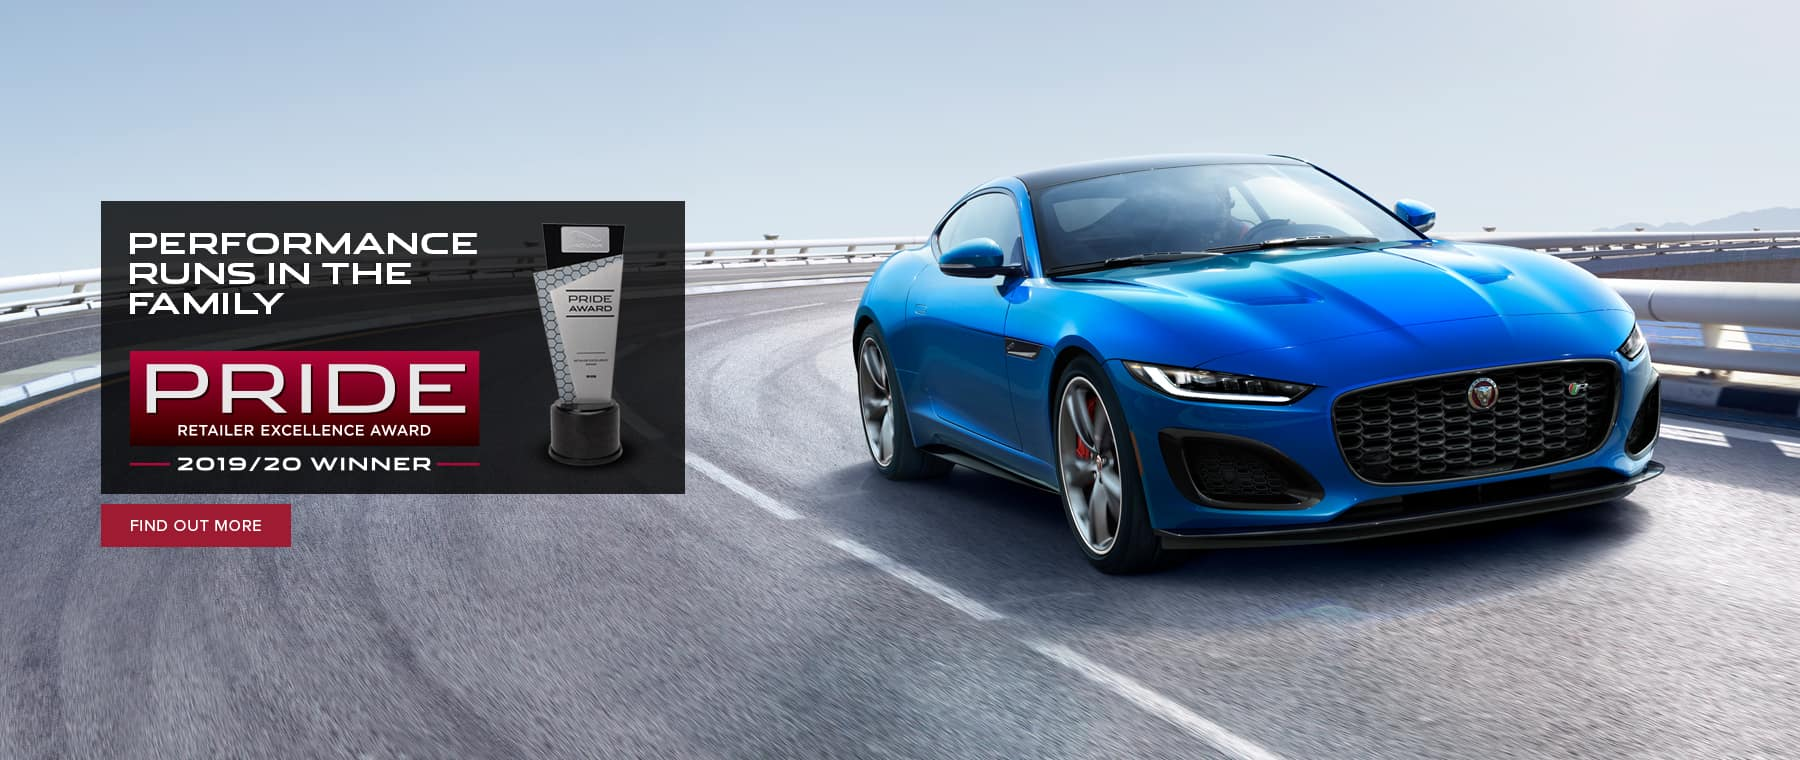 2019-2020 Performance Runs in the family. Jaguar Pride retailer excellence award 2019/20 Winner. Click to find out more.